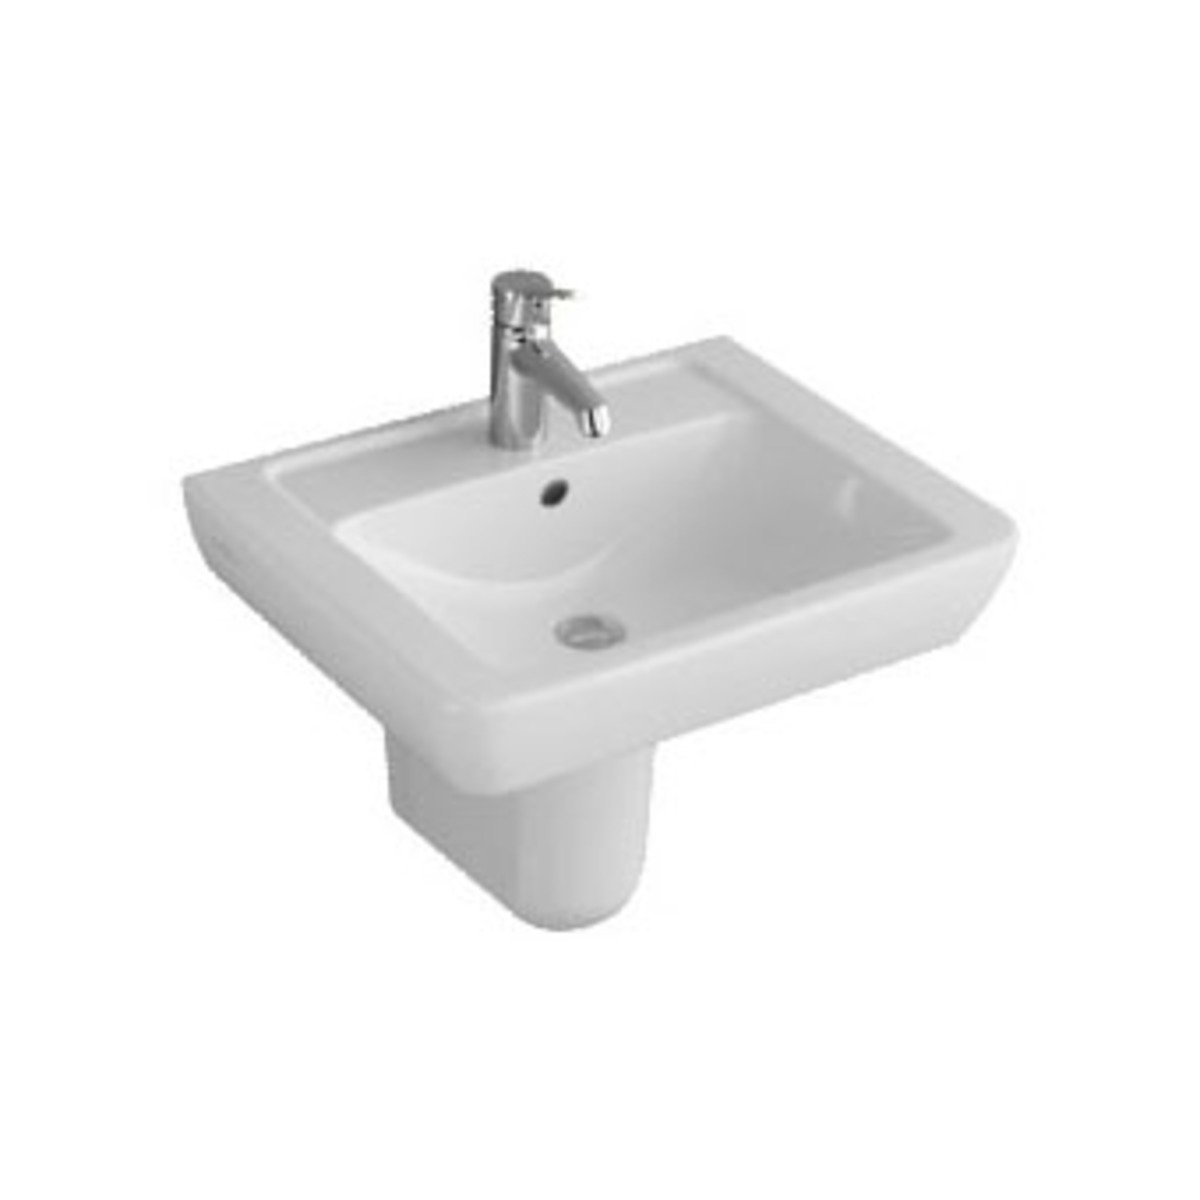 villeroy boch subway cache siphon pour lavabo avec set d 39 installation blanc 72640001. Black Bedroom Furniture Sets. Home Design Ideas